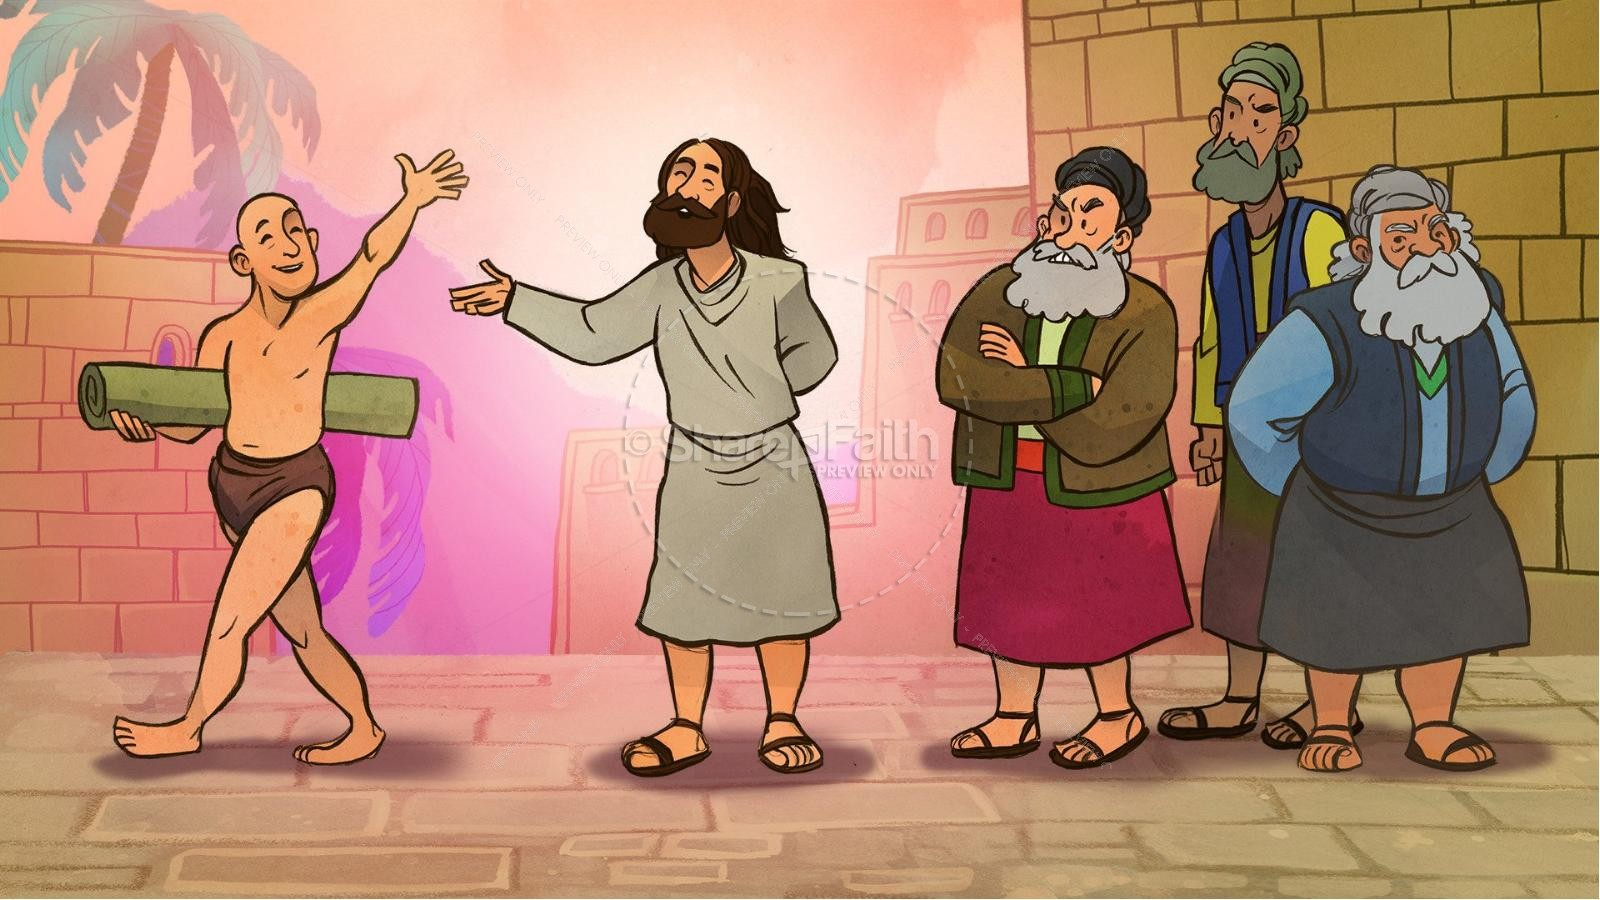 John 5 Pool of Bethesda Kids Bible Stories | Kids Bible Stories